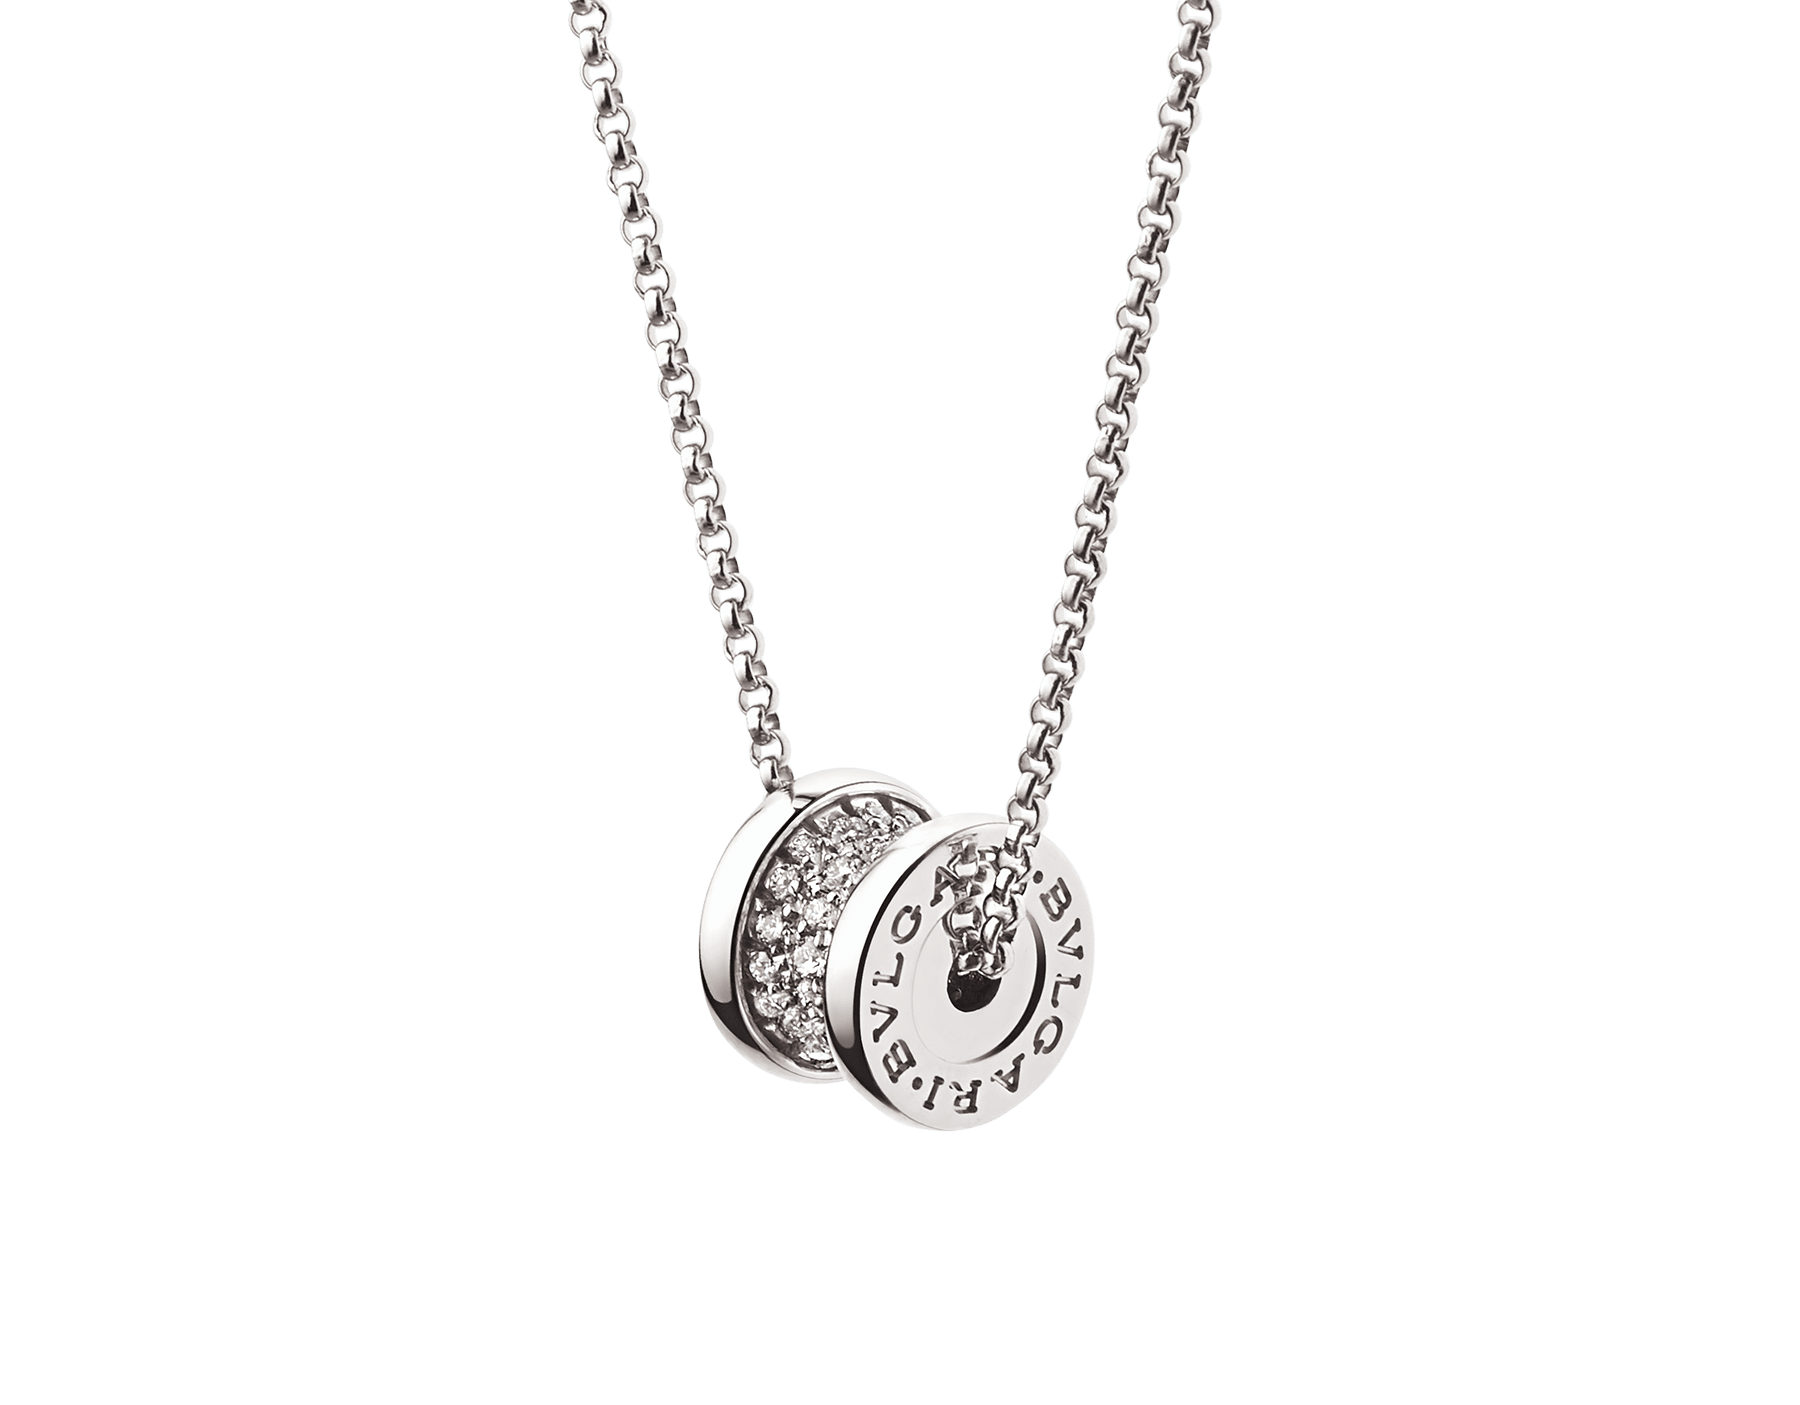 B.zero1 18 kt white gold necklace with round pendant in 18 kt white gold, set with pavé diamonds on the spiral. 351117 image 1